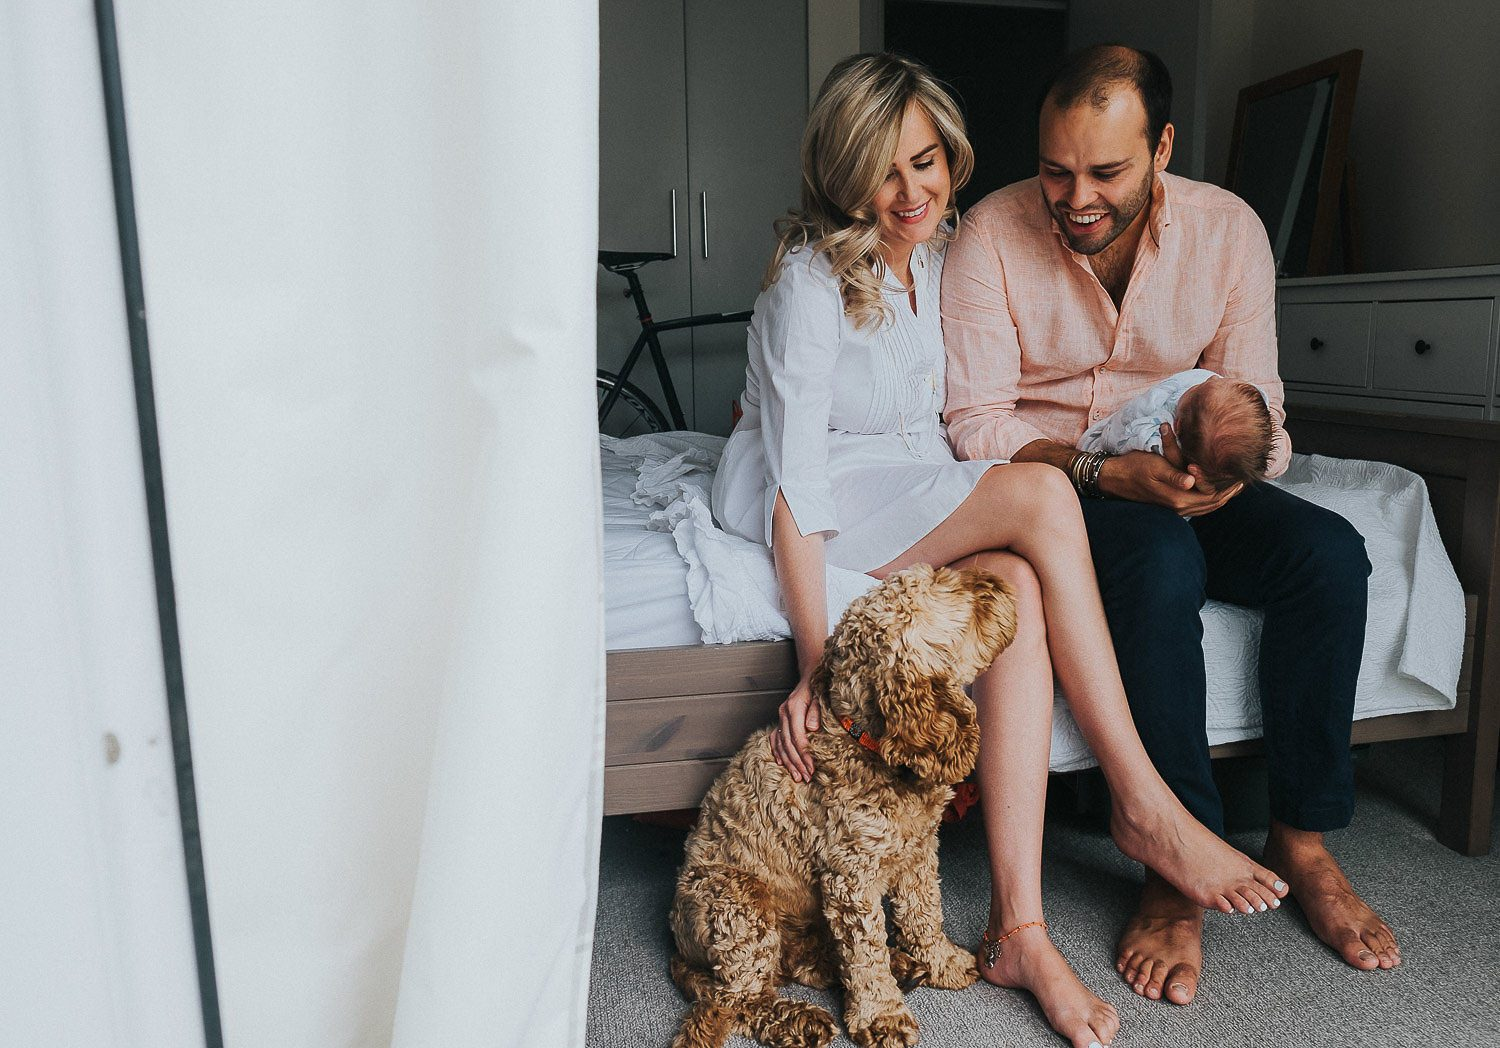 Newborn photo shoot at home, new parents with dog and baby